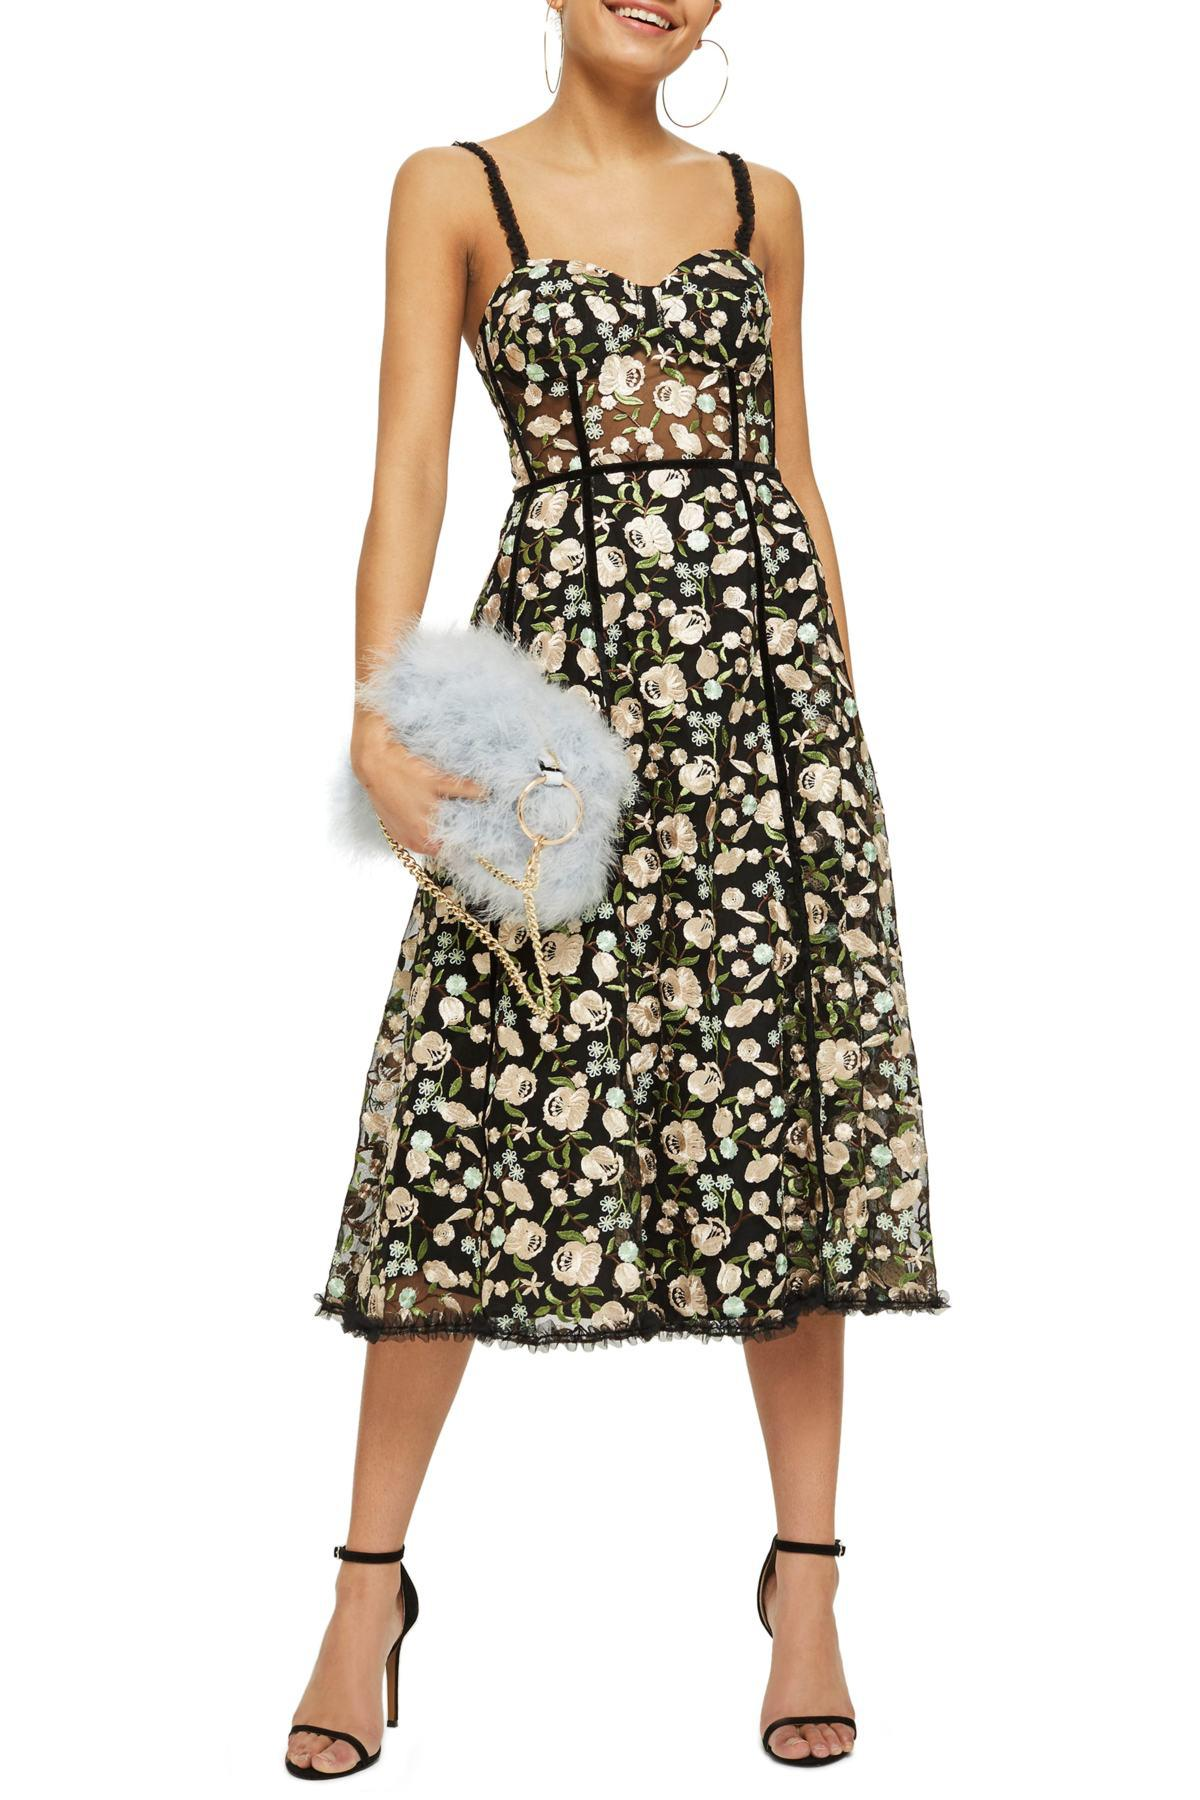 a19625c33978 TOPSHOP Floral Corset Midi Dress in Black - Lyst